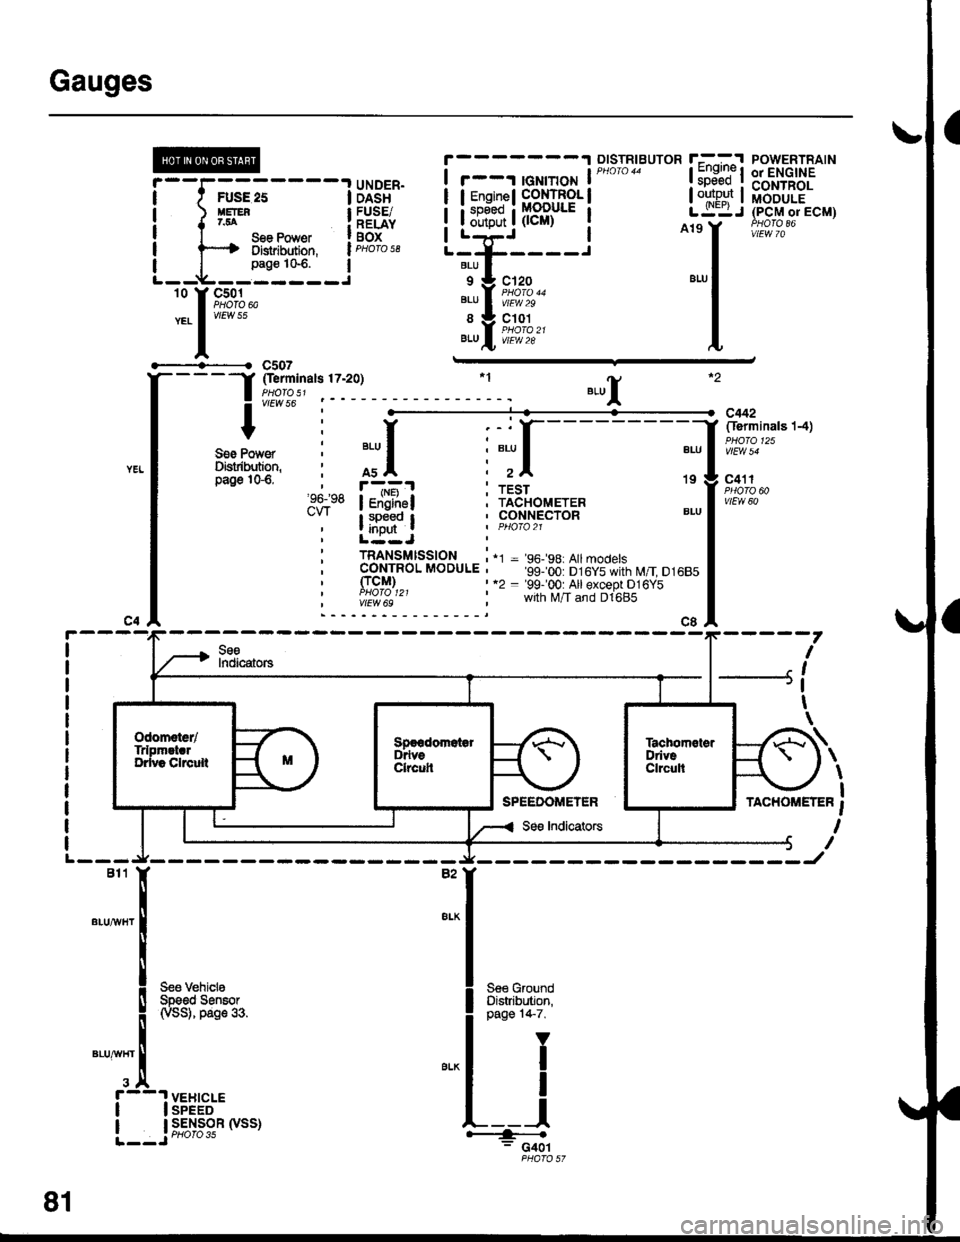 2004 cl500 fuse diagram